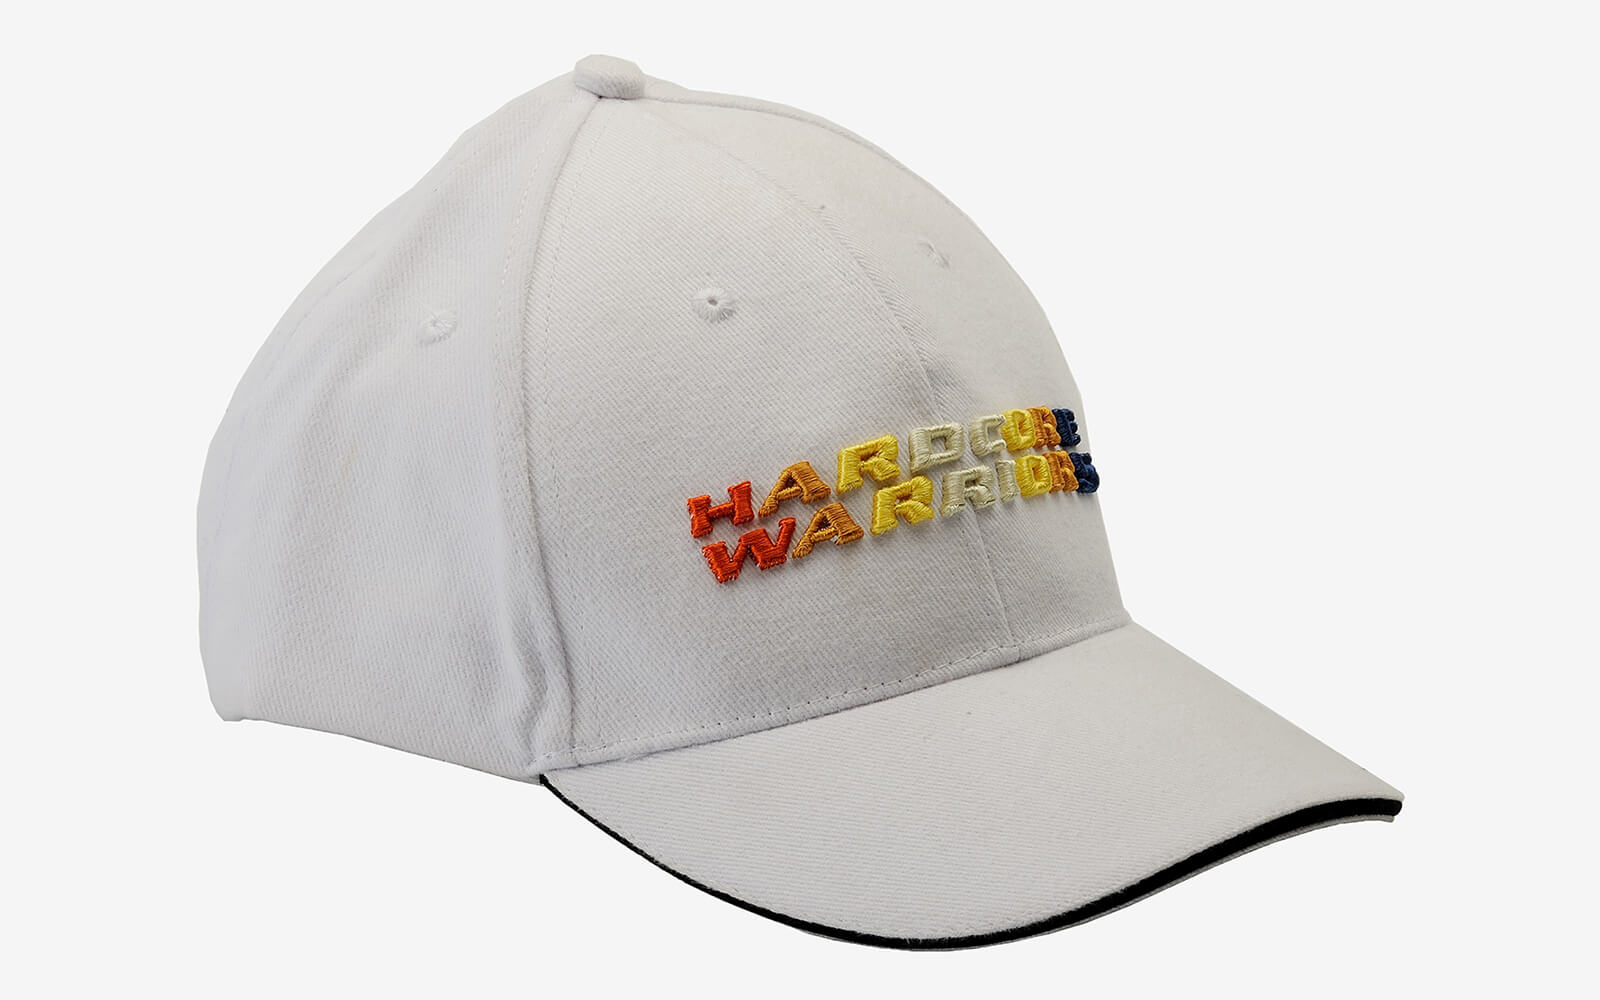 3D logo embroidered on fron cap